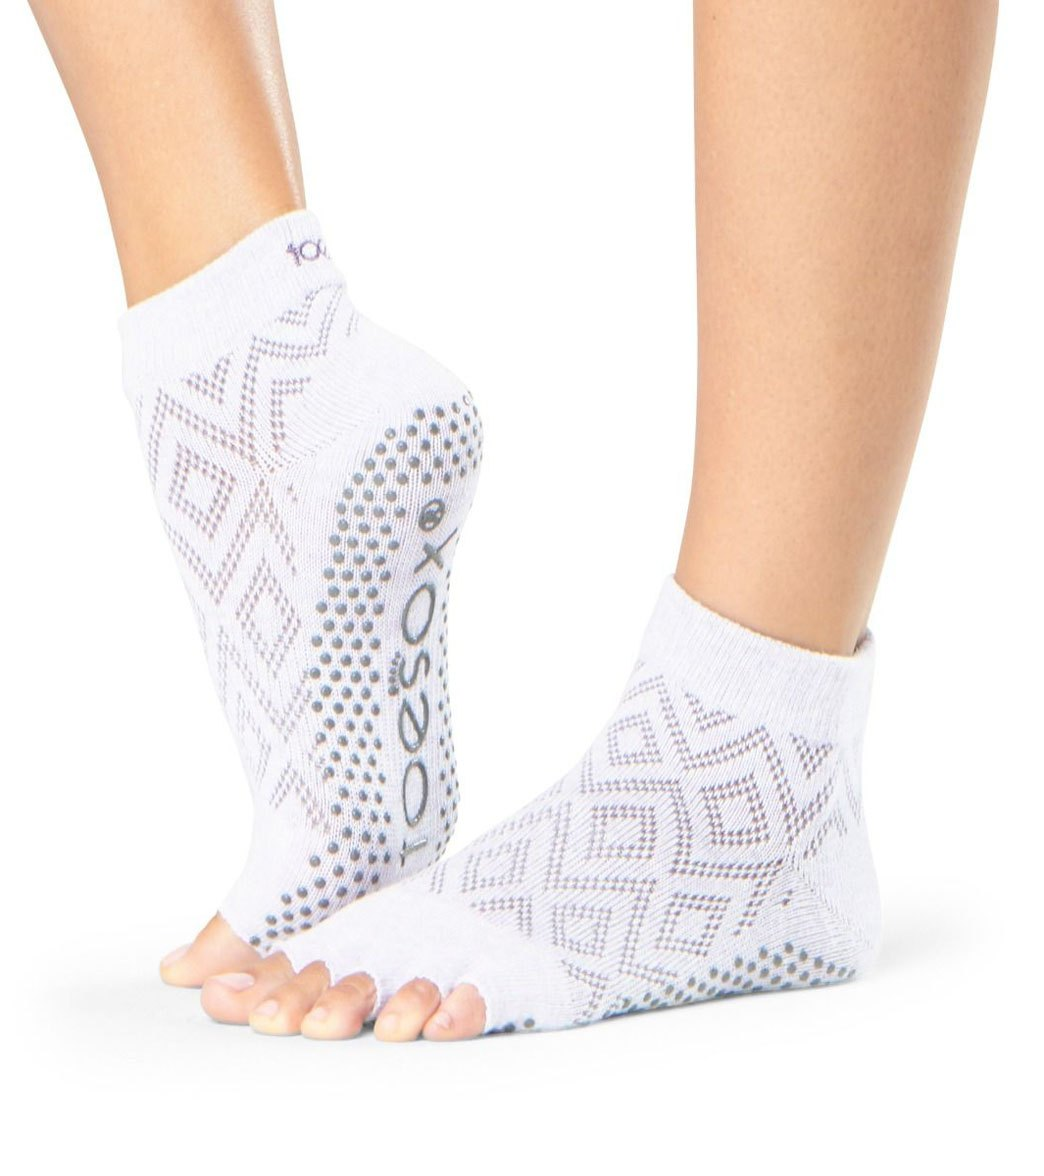 e71dc75106b7 Toesox Ankle Length Half-Toe Yoga Grip Socks at YogaOutlet.com